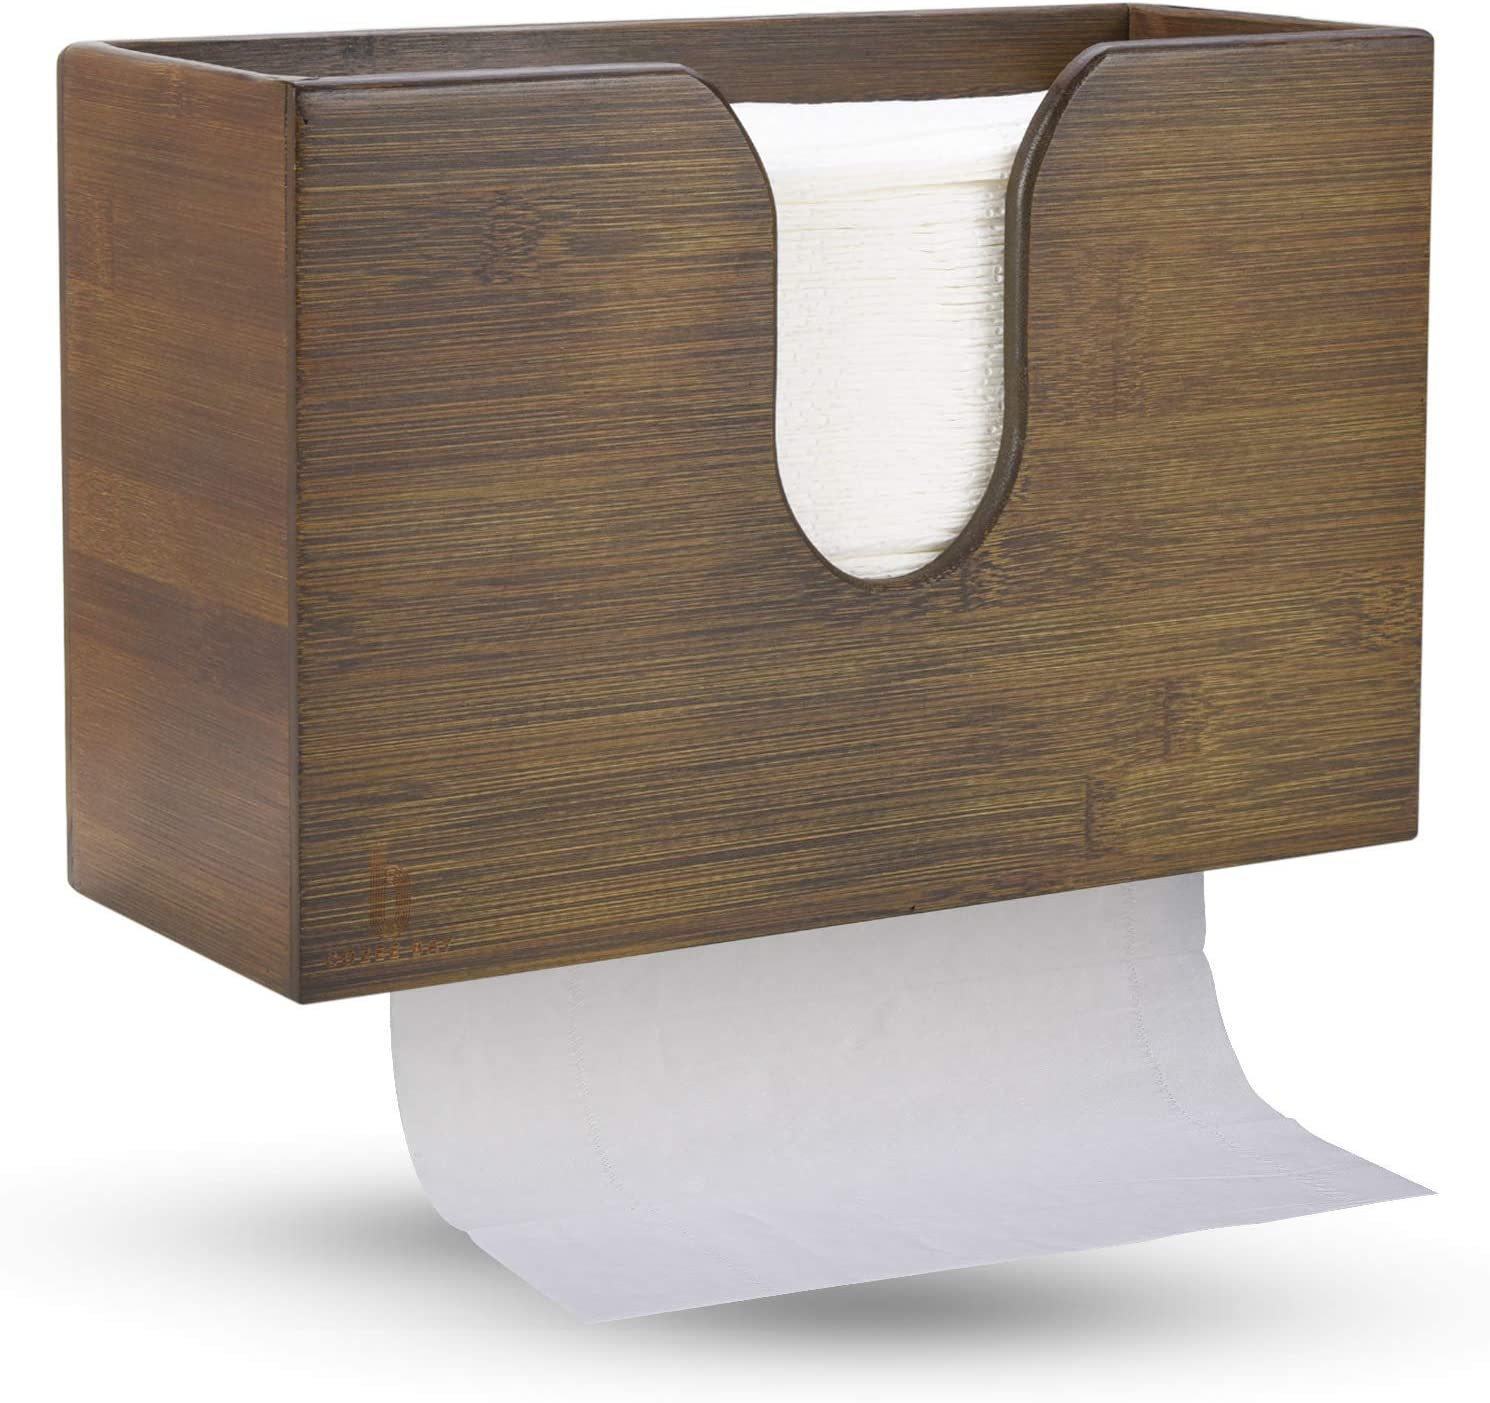 Bamboo Paper Towel Dispenser, Paper Towel Holder for Kitchen Bathroom Toilet of Home and Commercial, Wall Mount or Countertop for Multifold, C Fold, Z fold, Trifold Hand Towels (Vintage Brown)